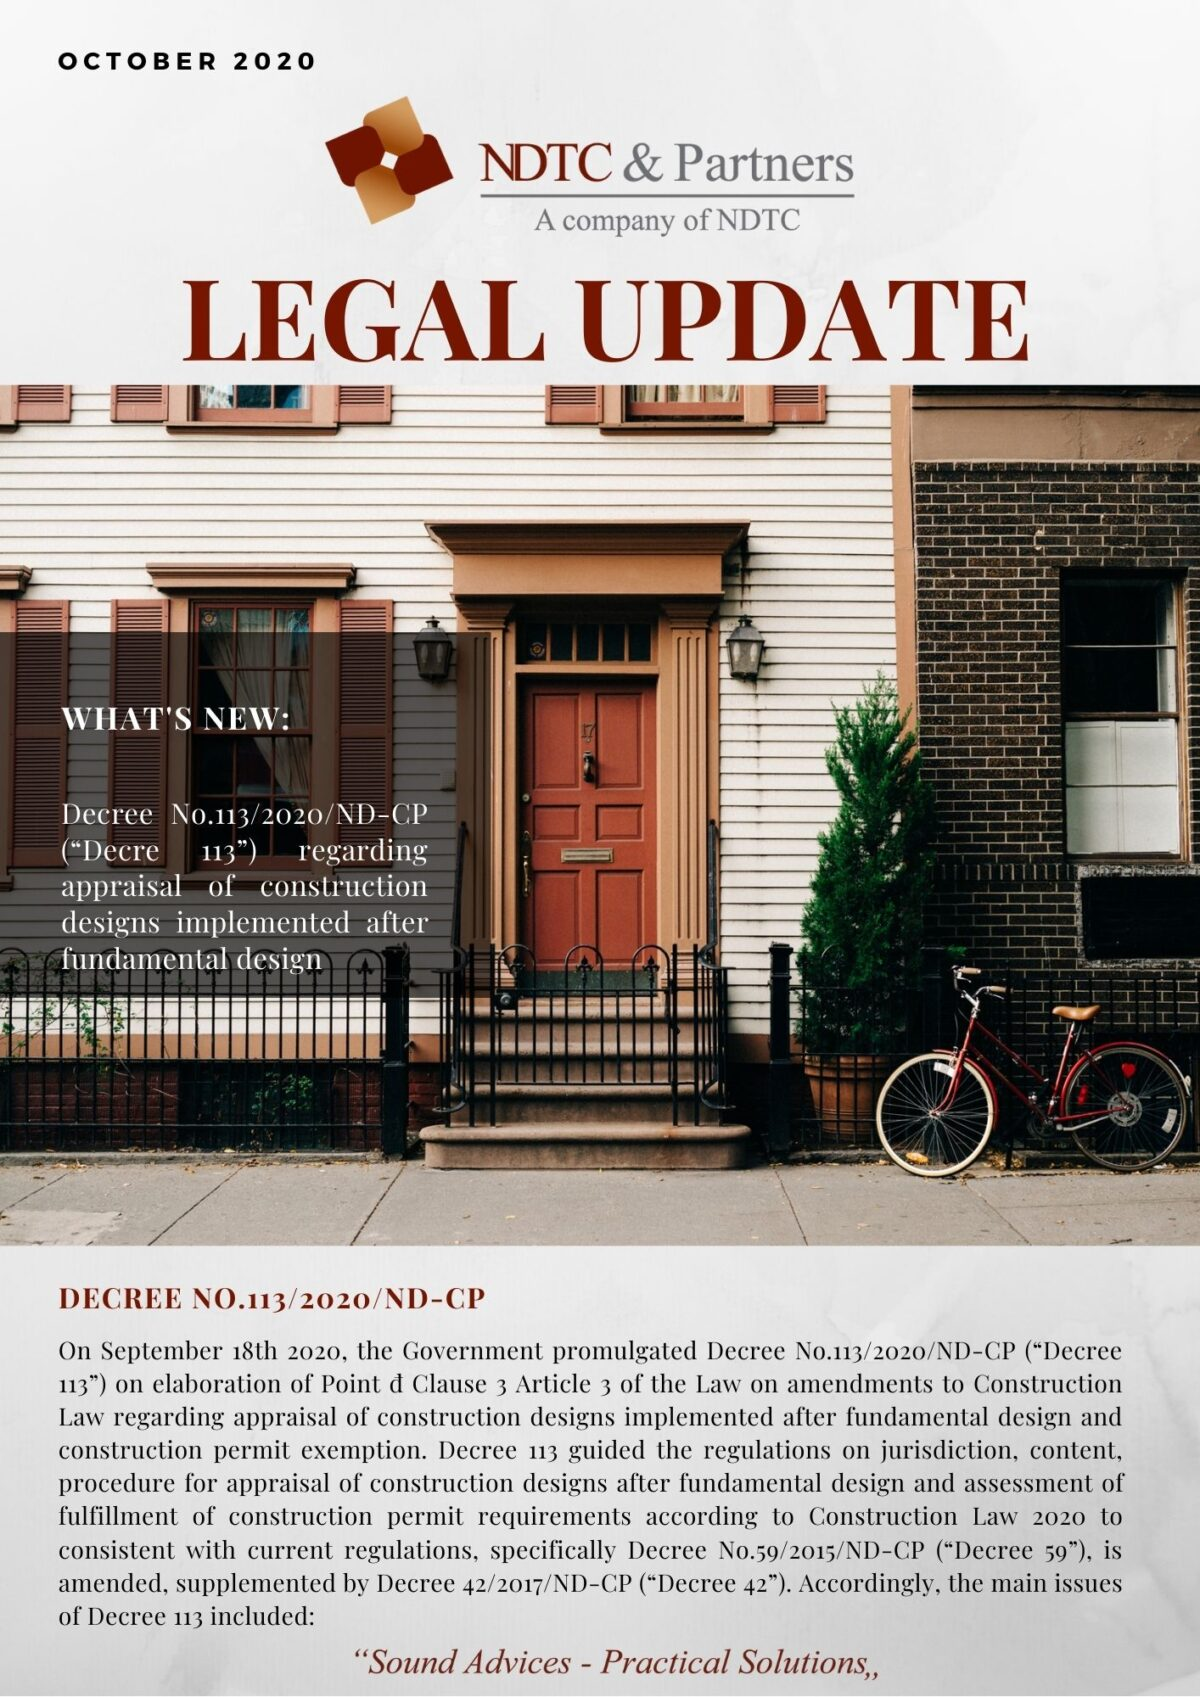 Legal Update Oct 2020